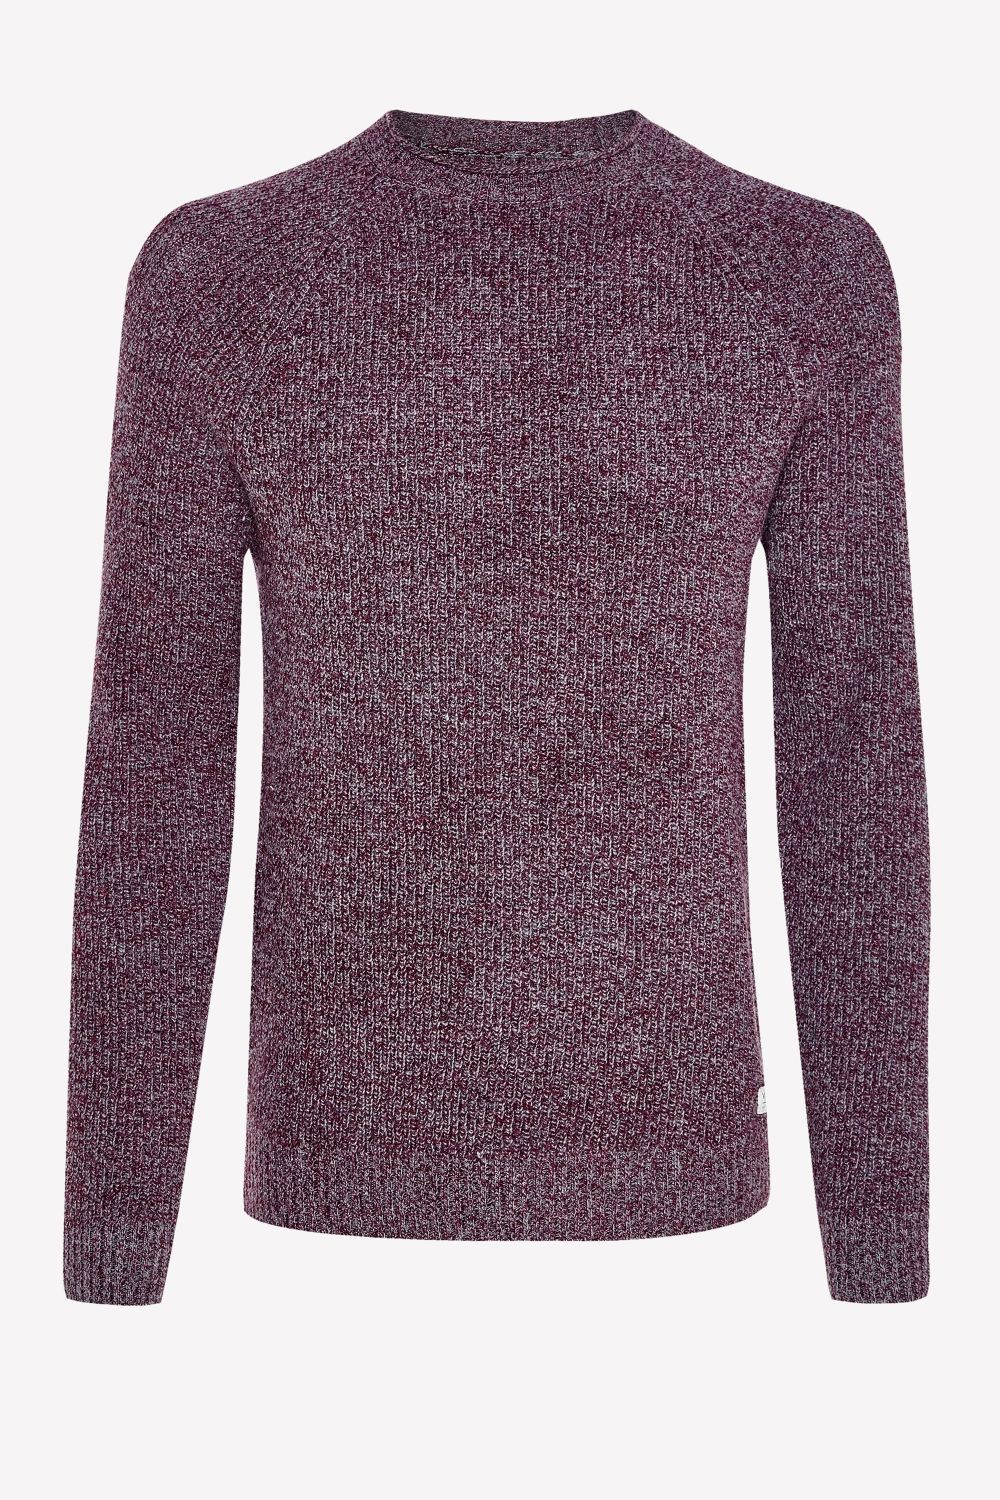 Jack Wills Knutsford Sweater